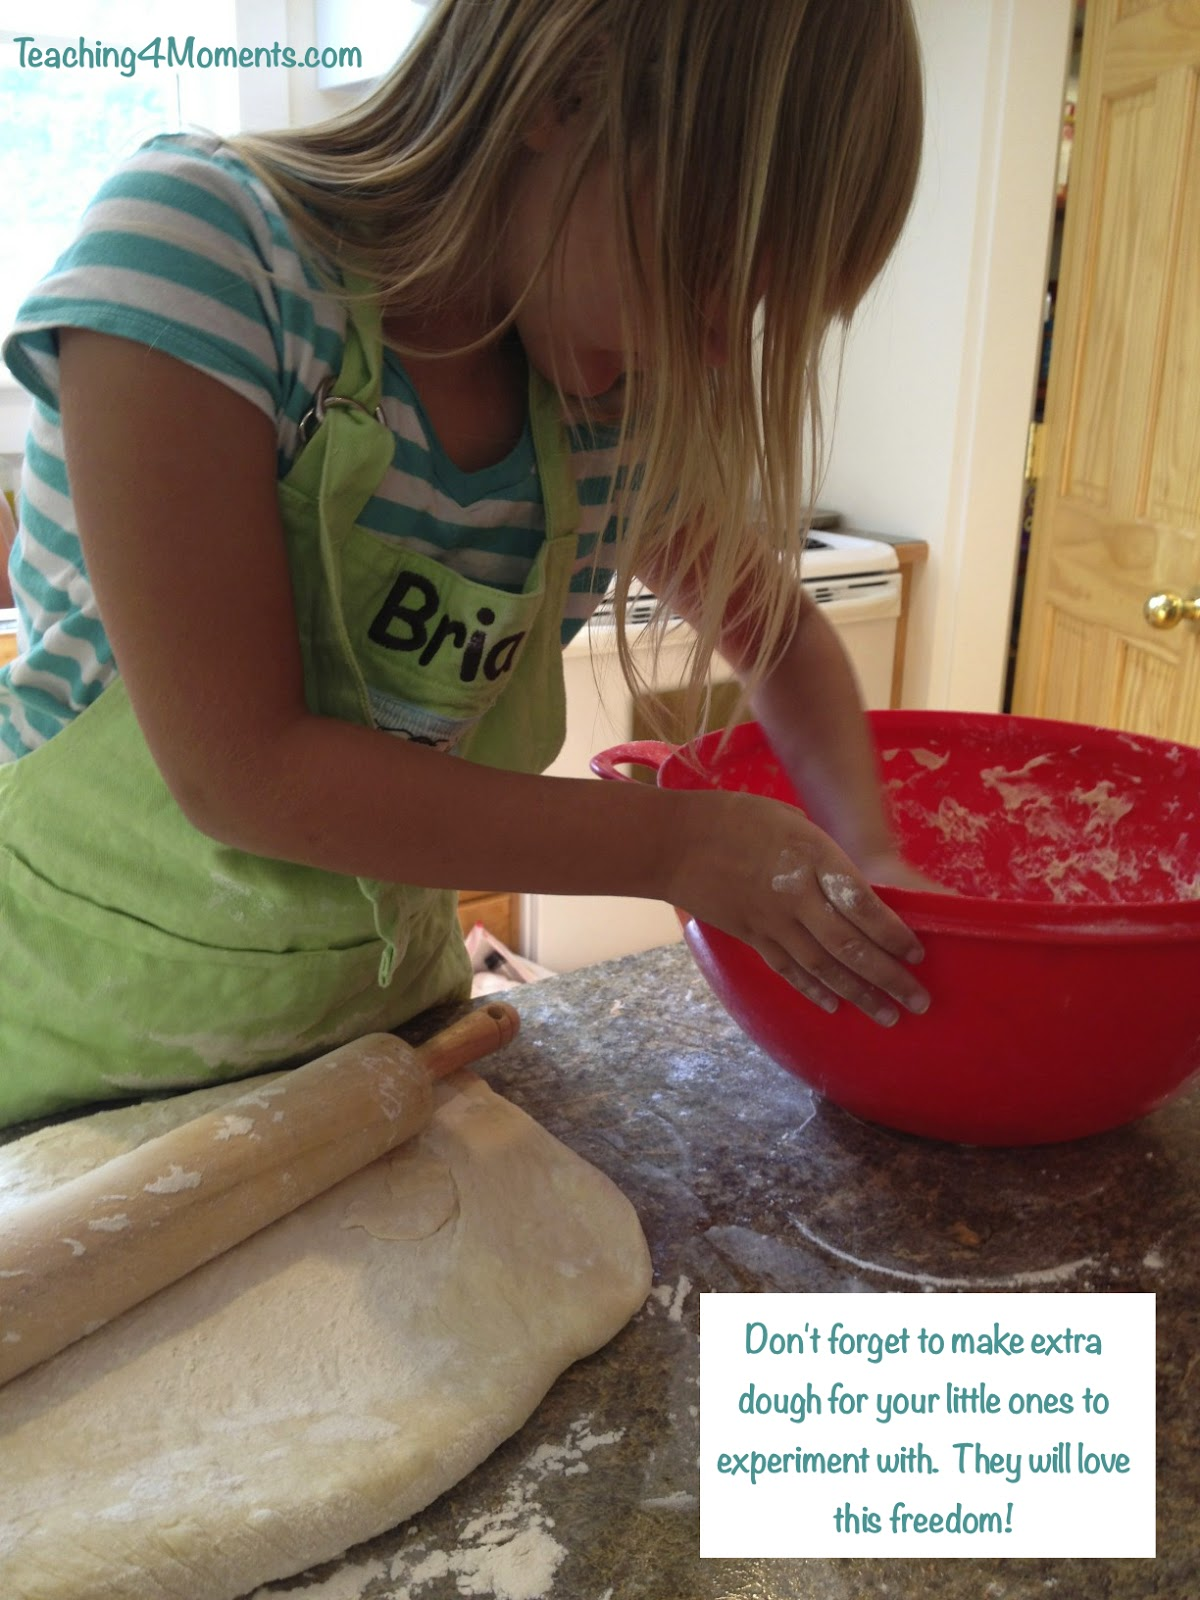 Make extra dough for kids to experiment with.